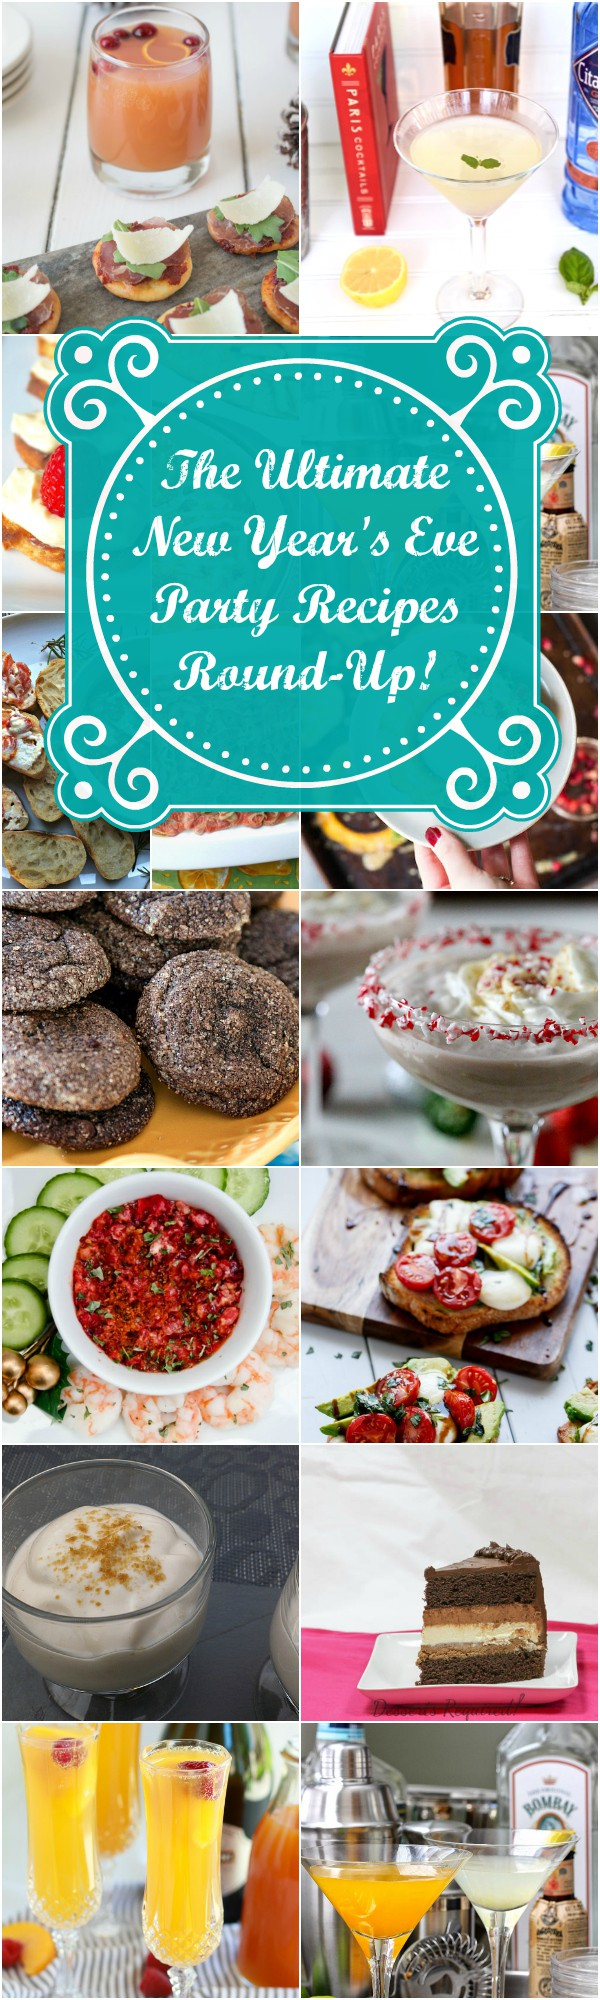 Consider this your ultimate guide to New Year's Eve Party Recipes. This round-up contains almost 200 party recipes from vegan and vegetarian appetizers, to meaty apps and seafood, all manner of cocktails and desserts from cupcakes to parfaits! Find your New Year's Eve Cocktail Party Menu right here! | pastrychefonline.com